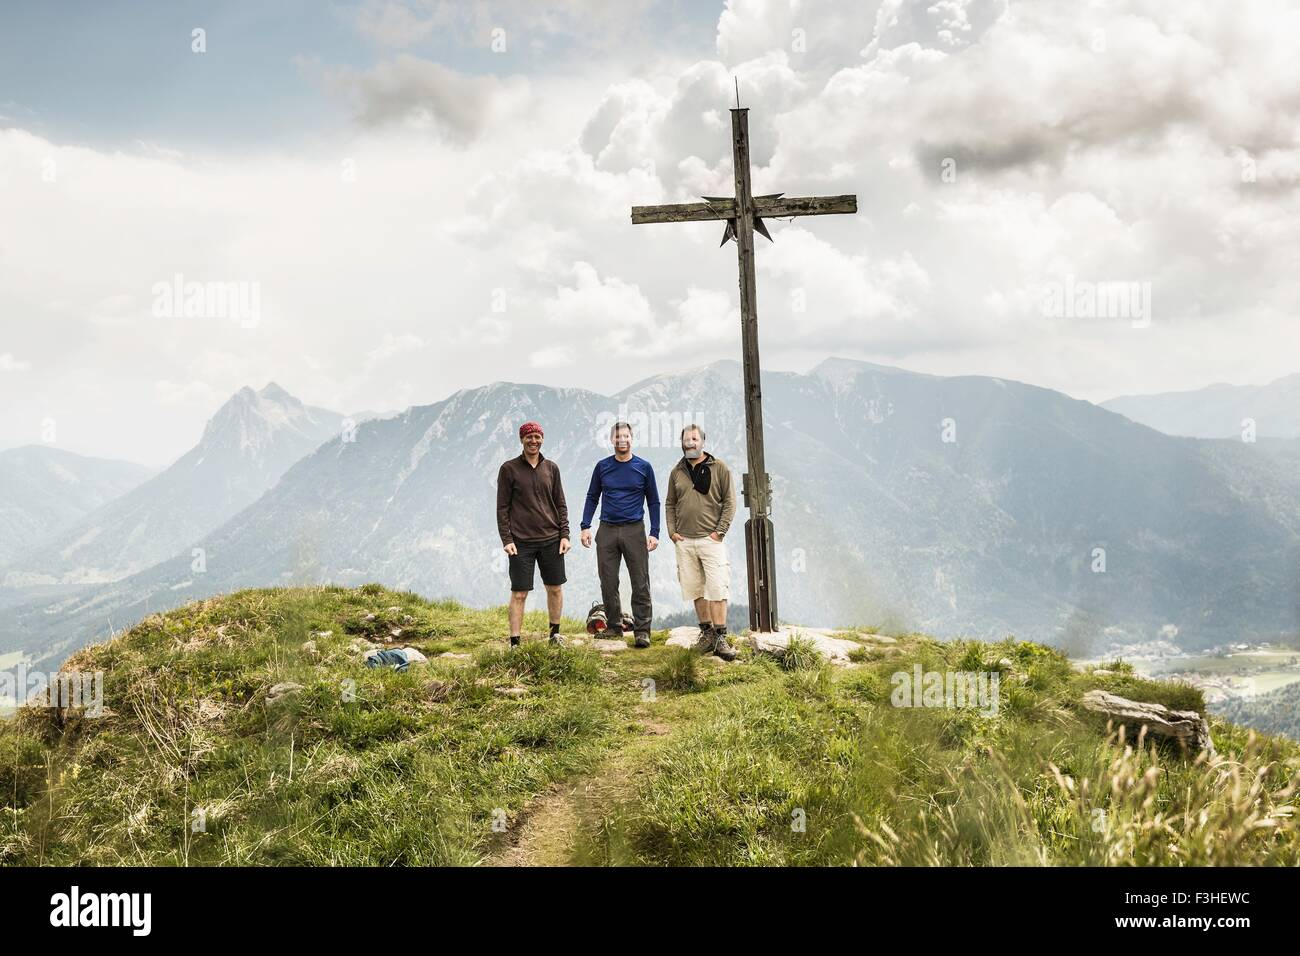 Portrait of three mature male hikers on mountain, Achenkirch, Austria - Stock Image